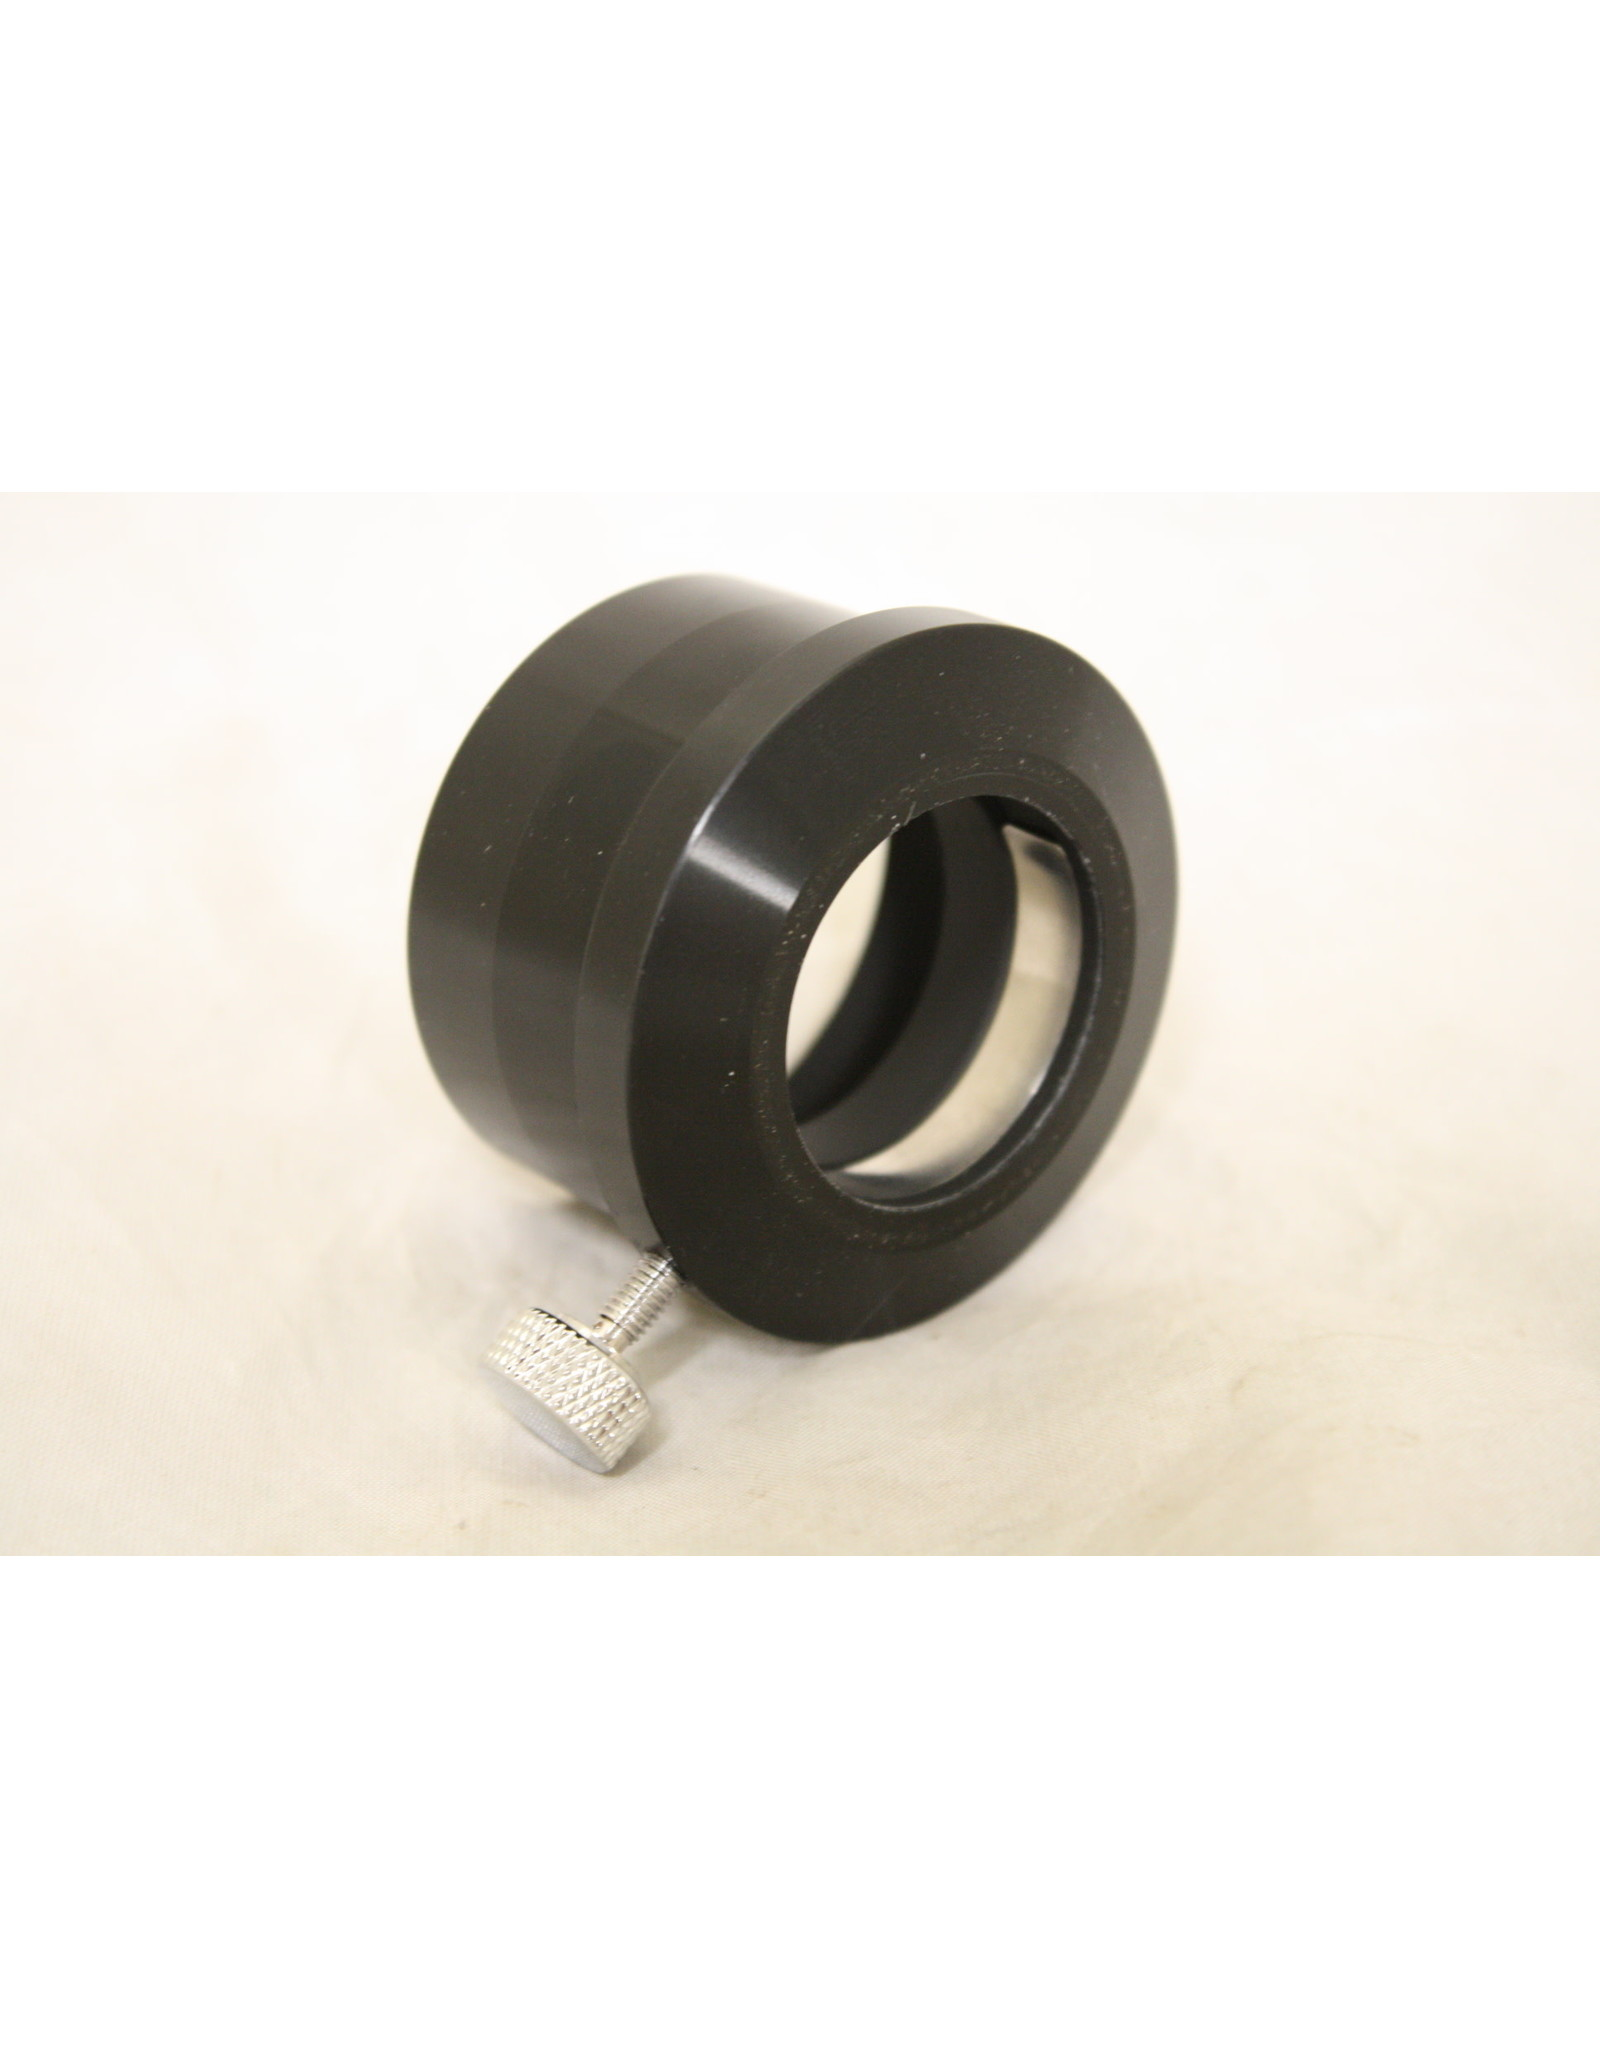 2-1.25 Reducer Adapter (Pre-owned)